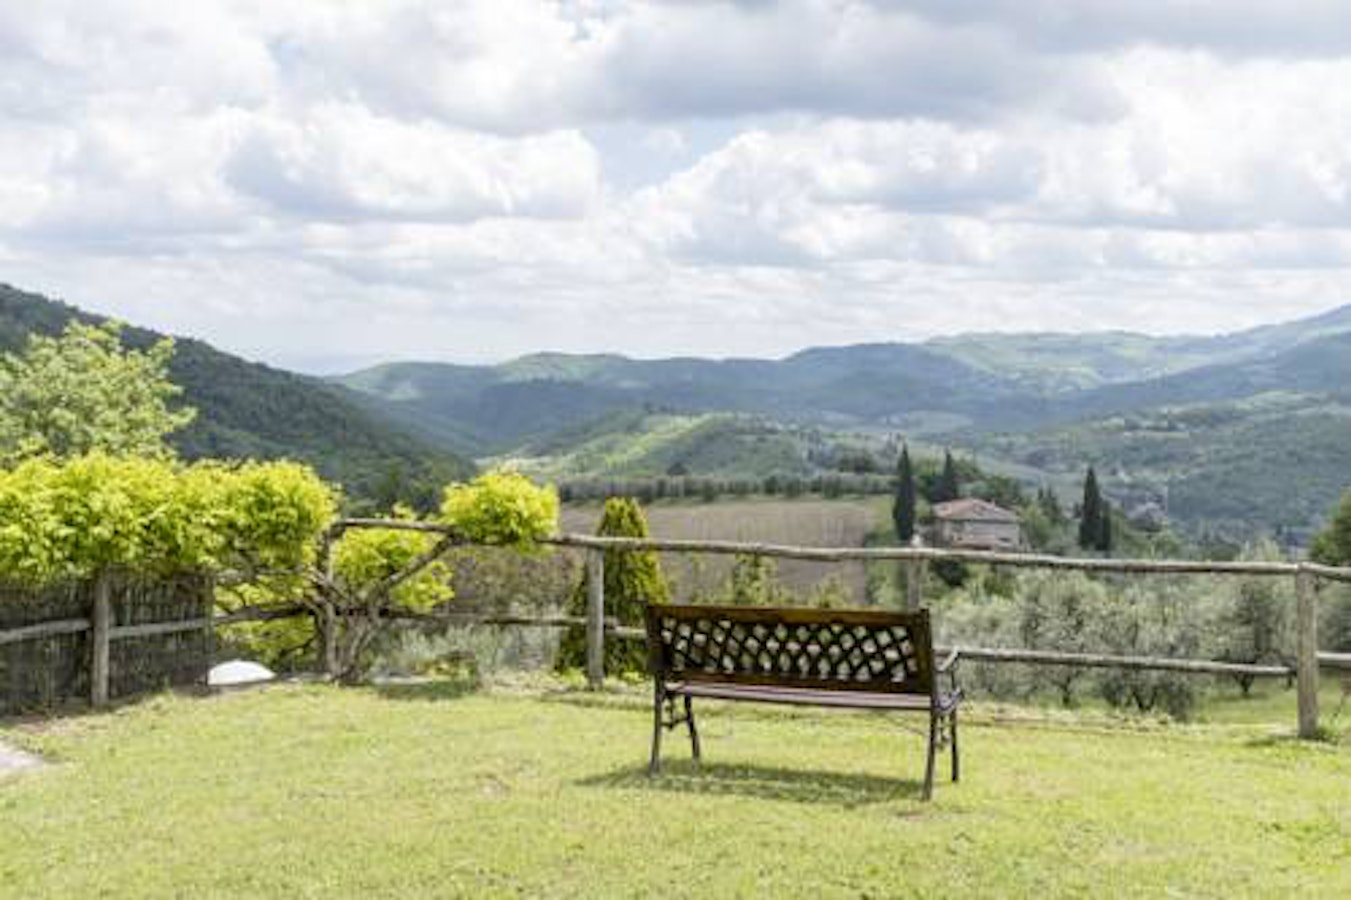 Agriturismo La Sala Greve In Chianti Holiday Apartments - Tranquil photos capture the beauty of tuscanys countryside